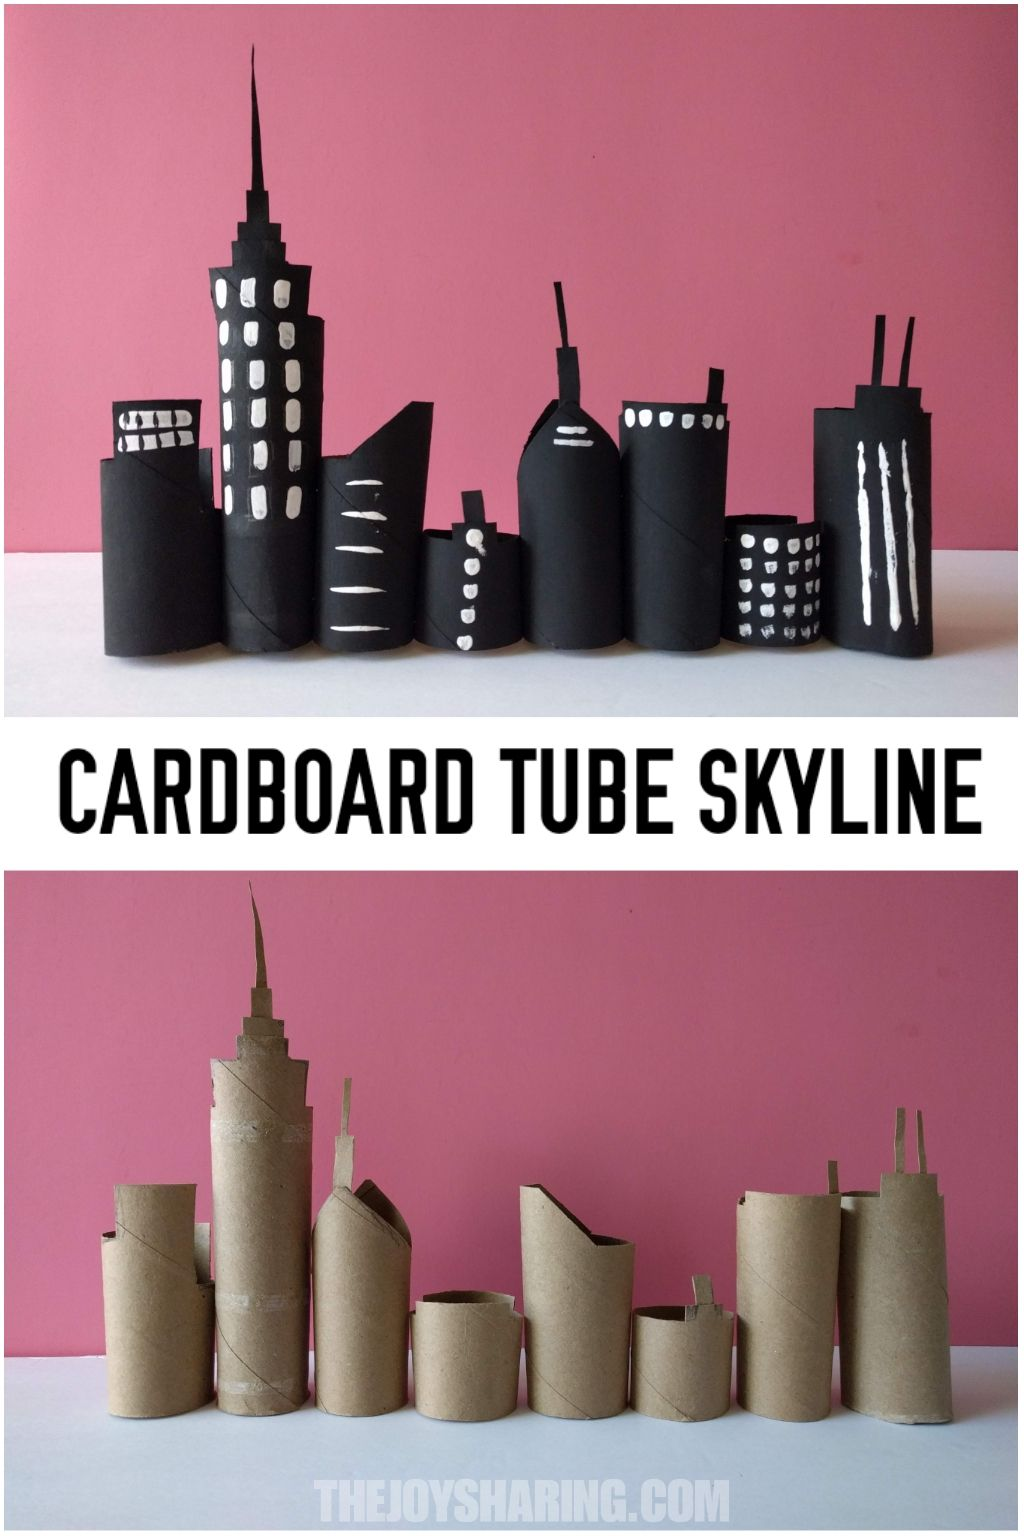 Skyline Cardboard Tube Craft Cardboard Tube Crafts Cardboard